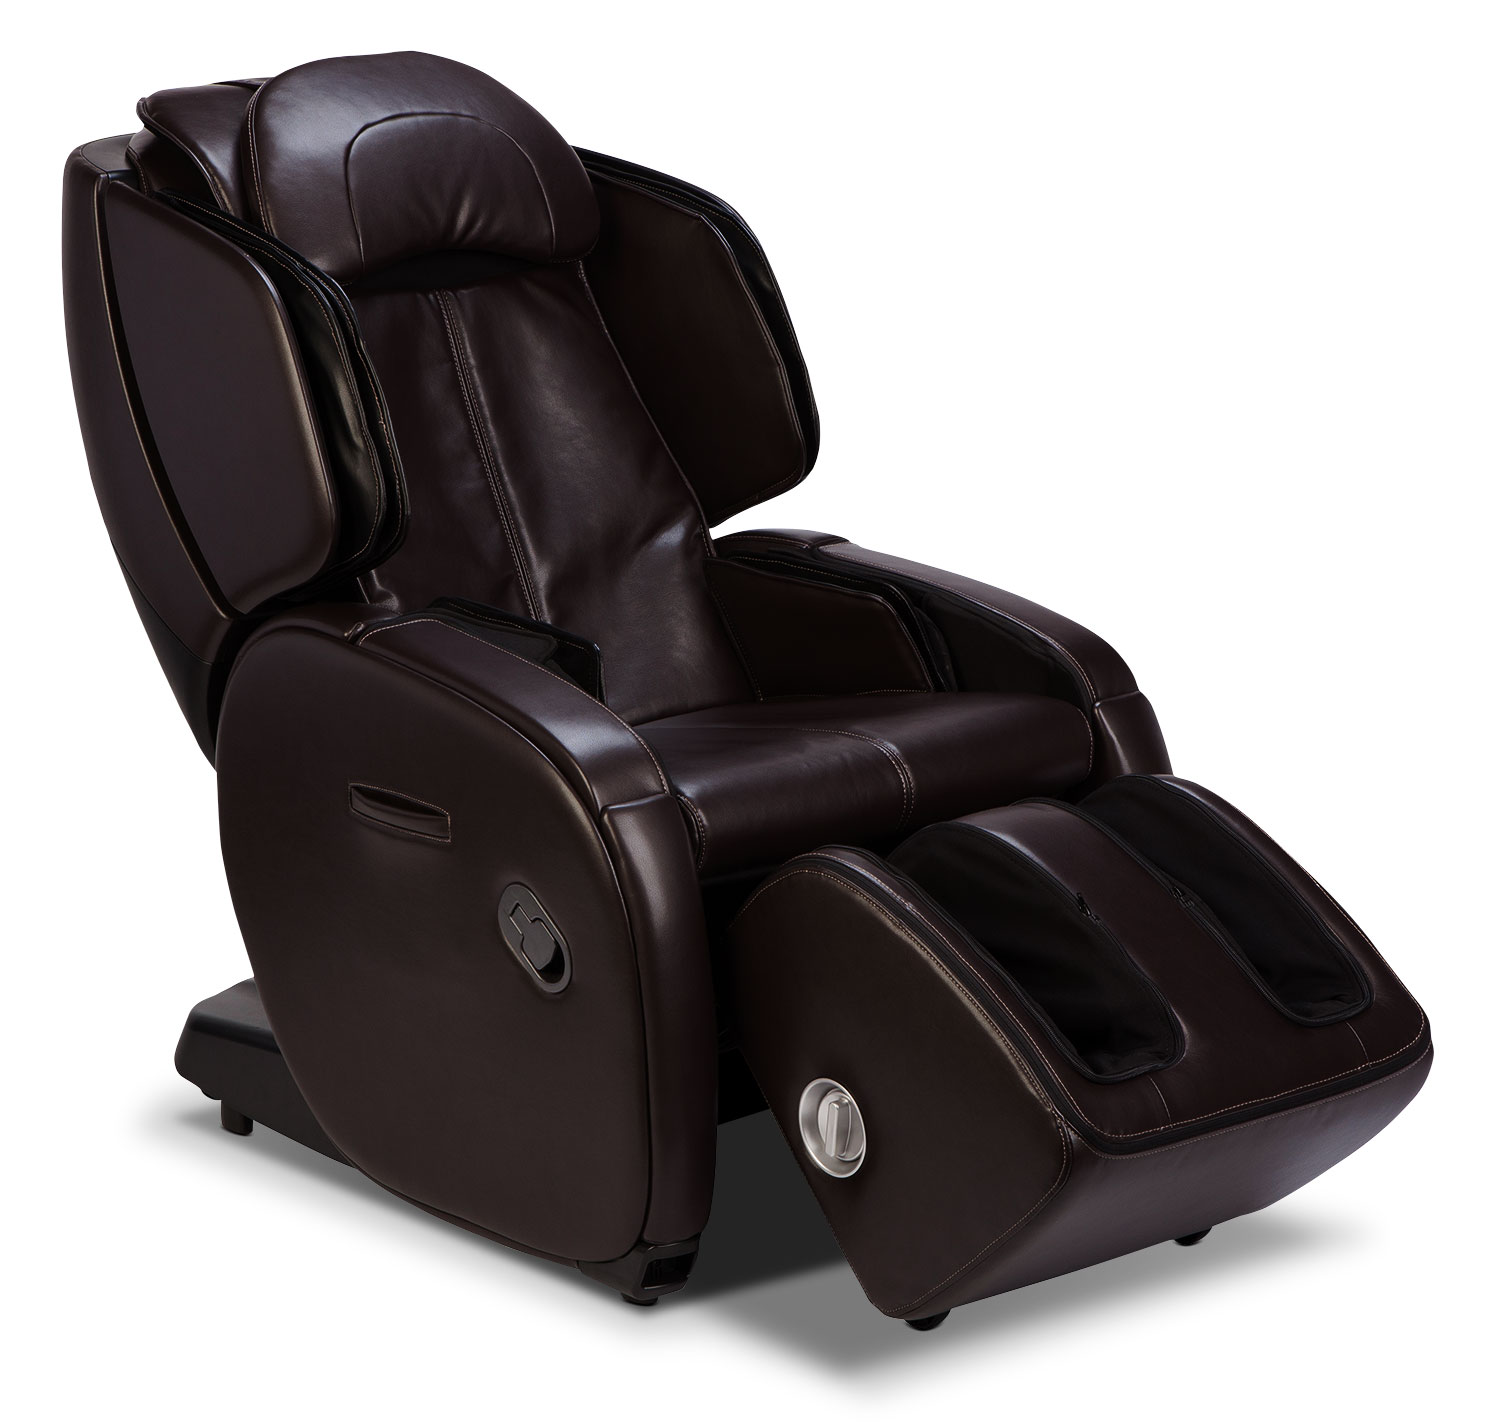 Human Touch AcuTouch® 6.0 Auto Immersion Massage Chair - Espresso